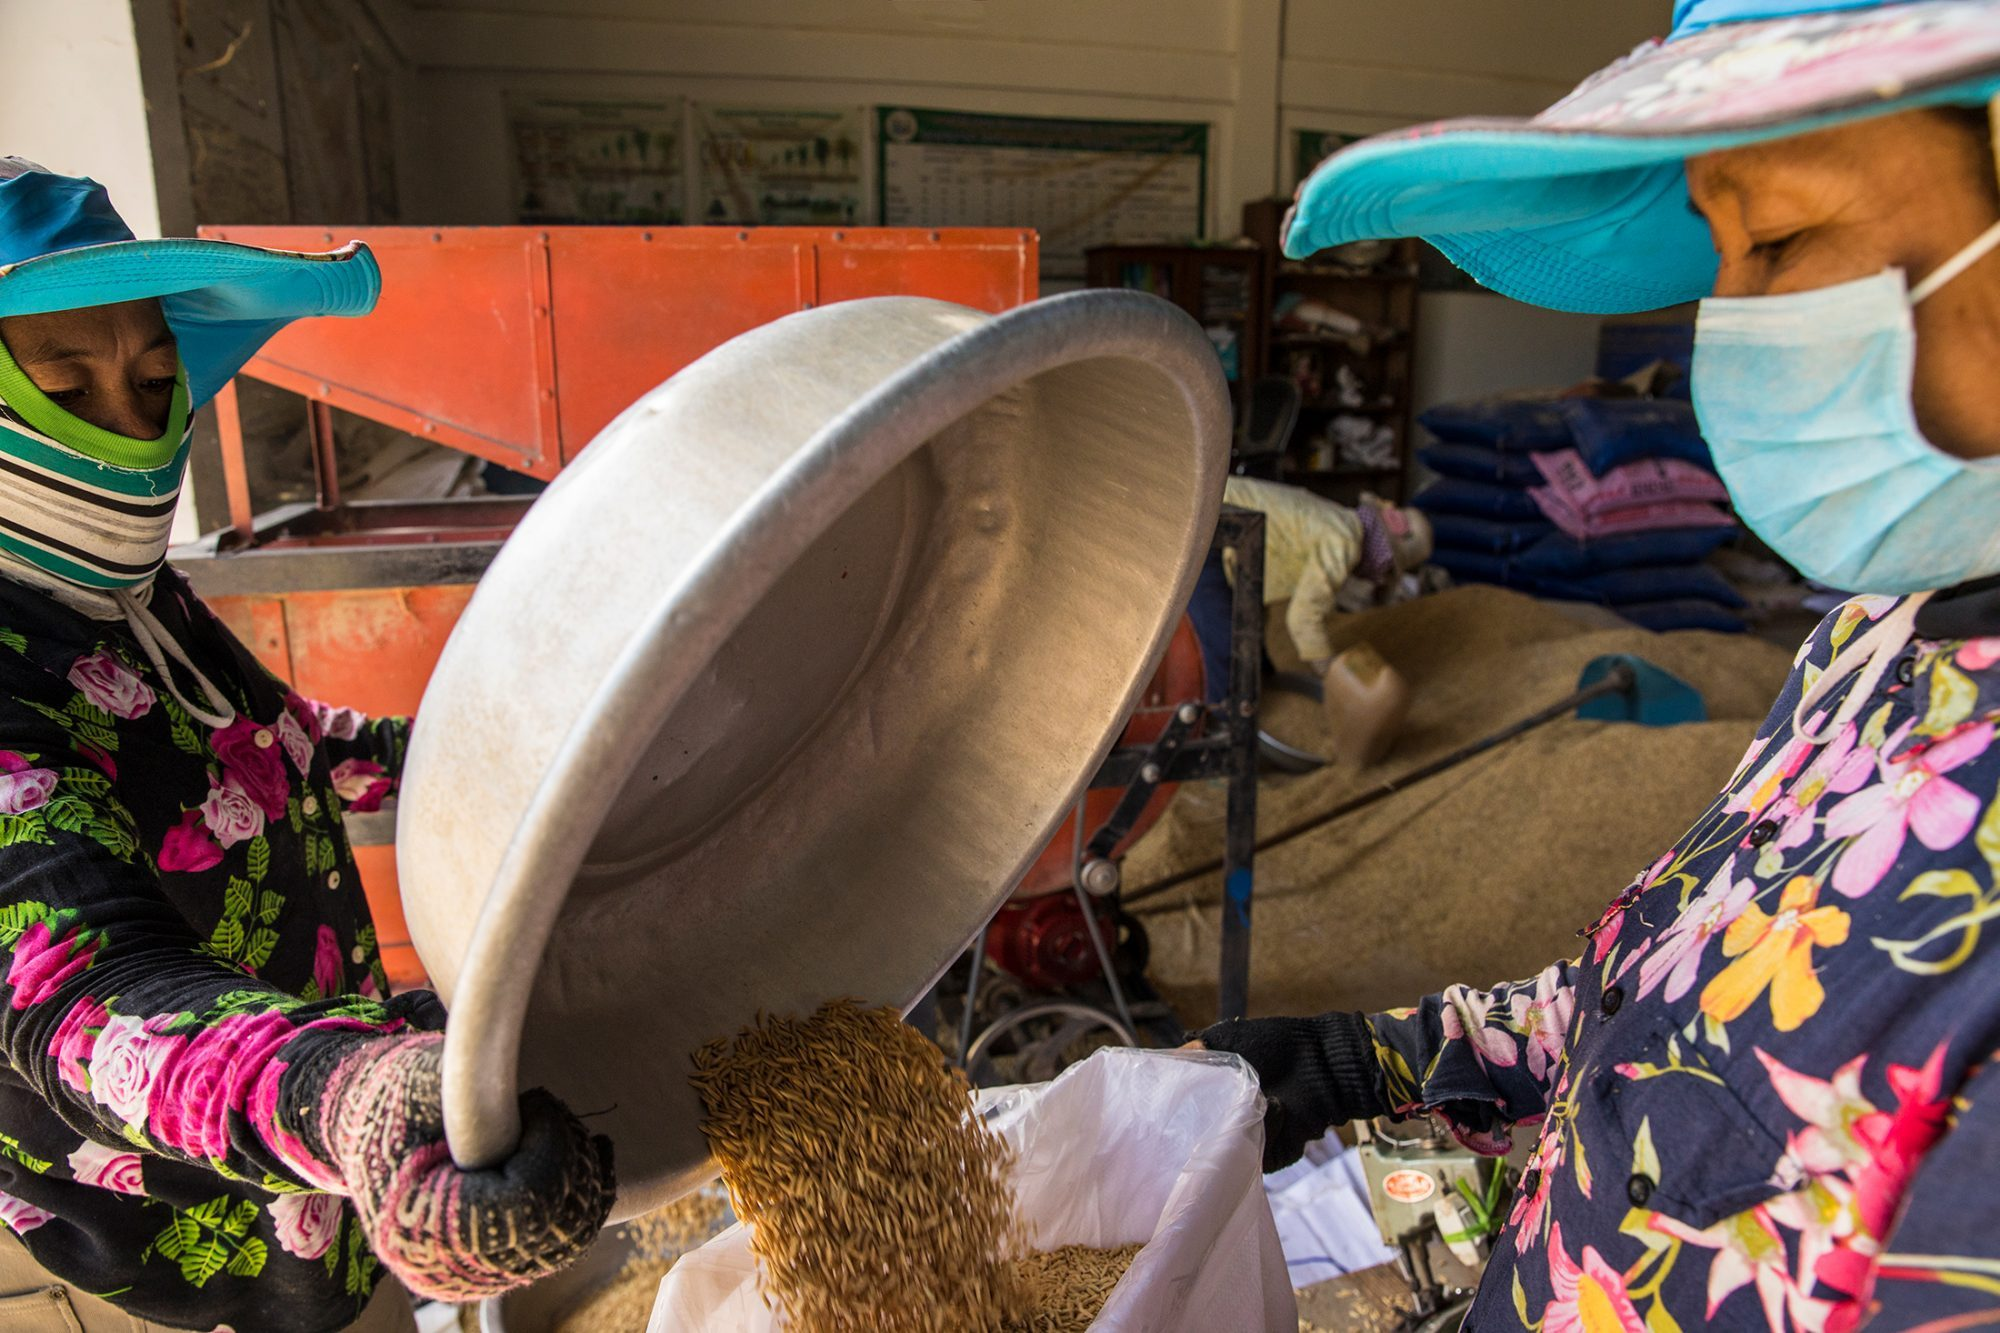 Two women pour a large metal dish of the processed rice into a large white bag to sew up